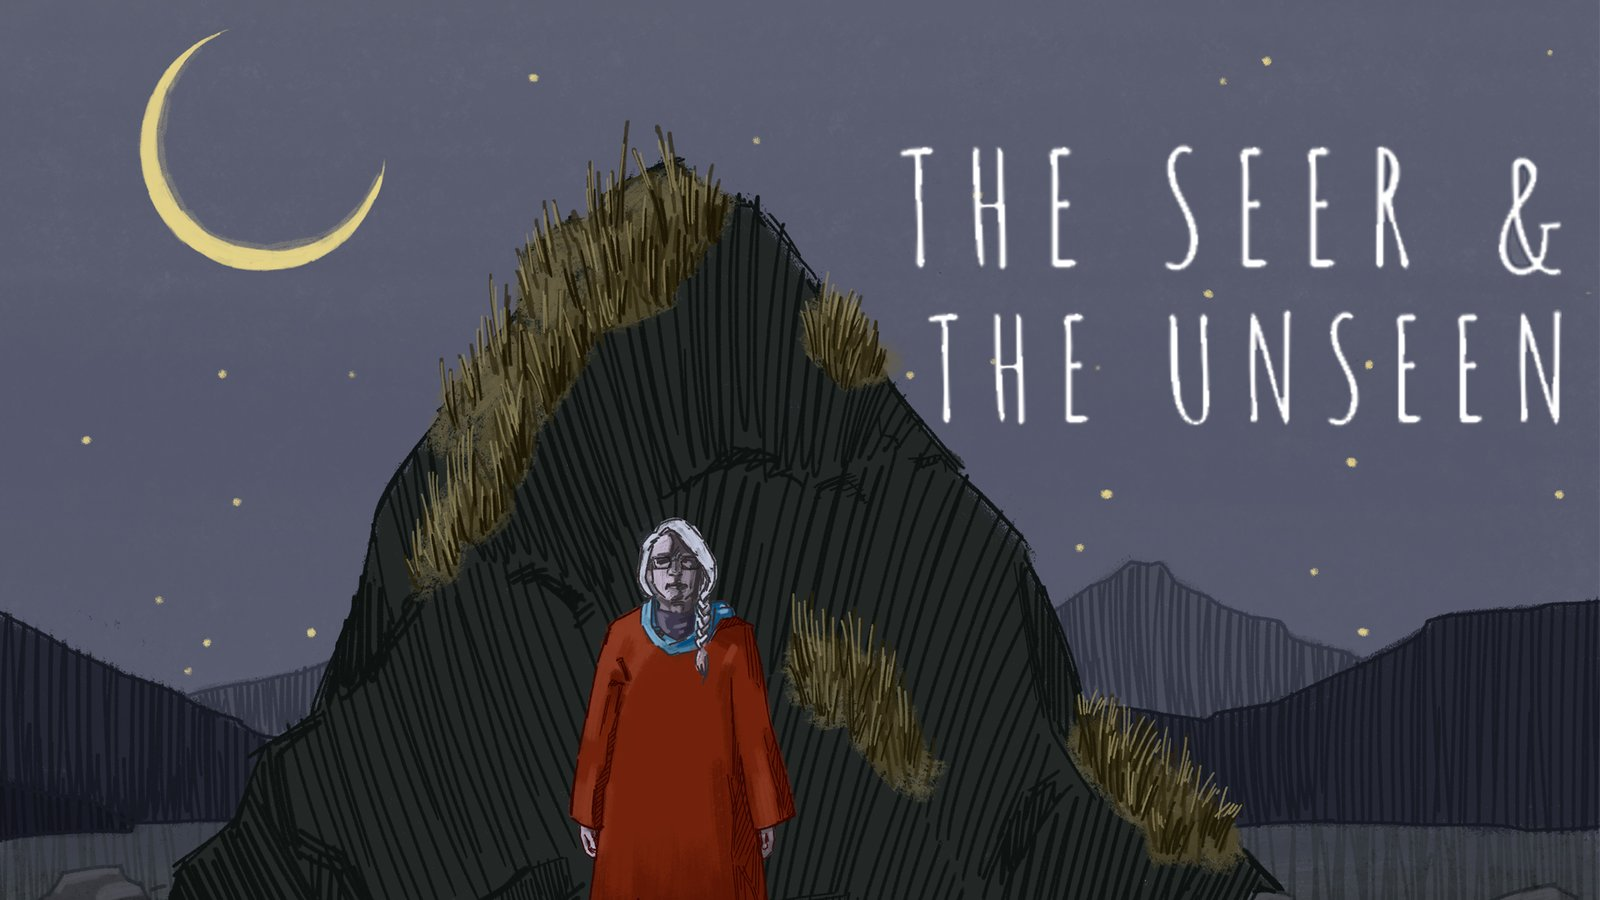 The Seer and the Unseen